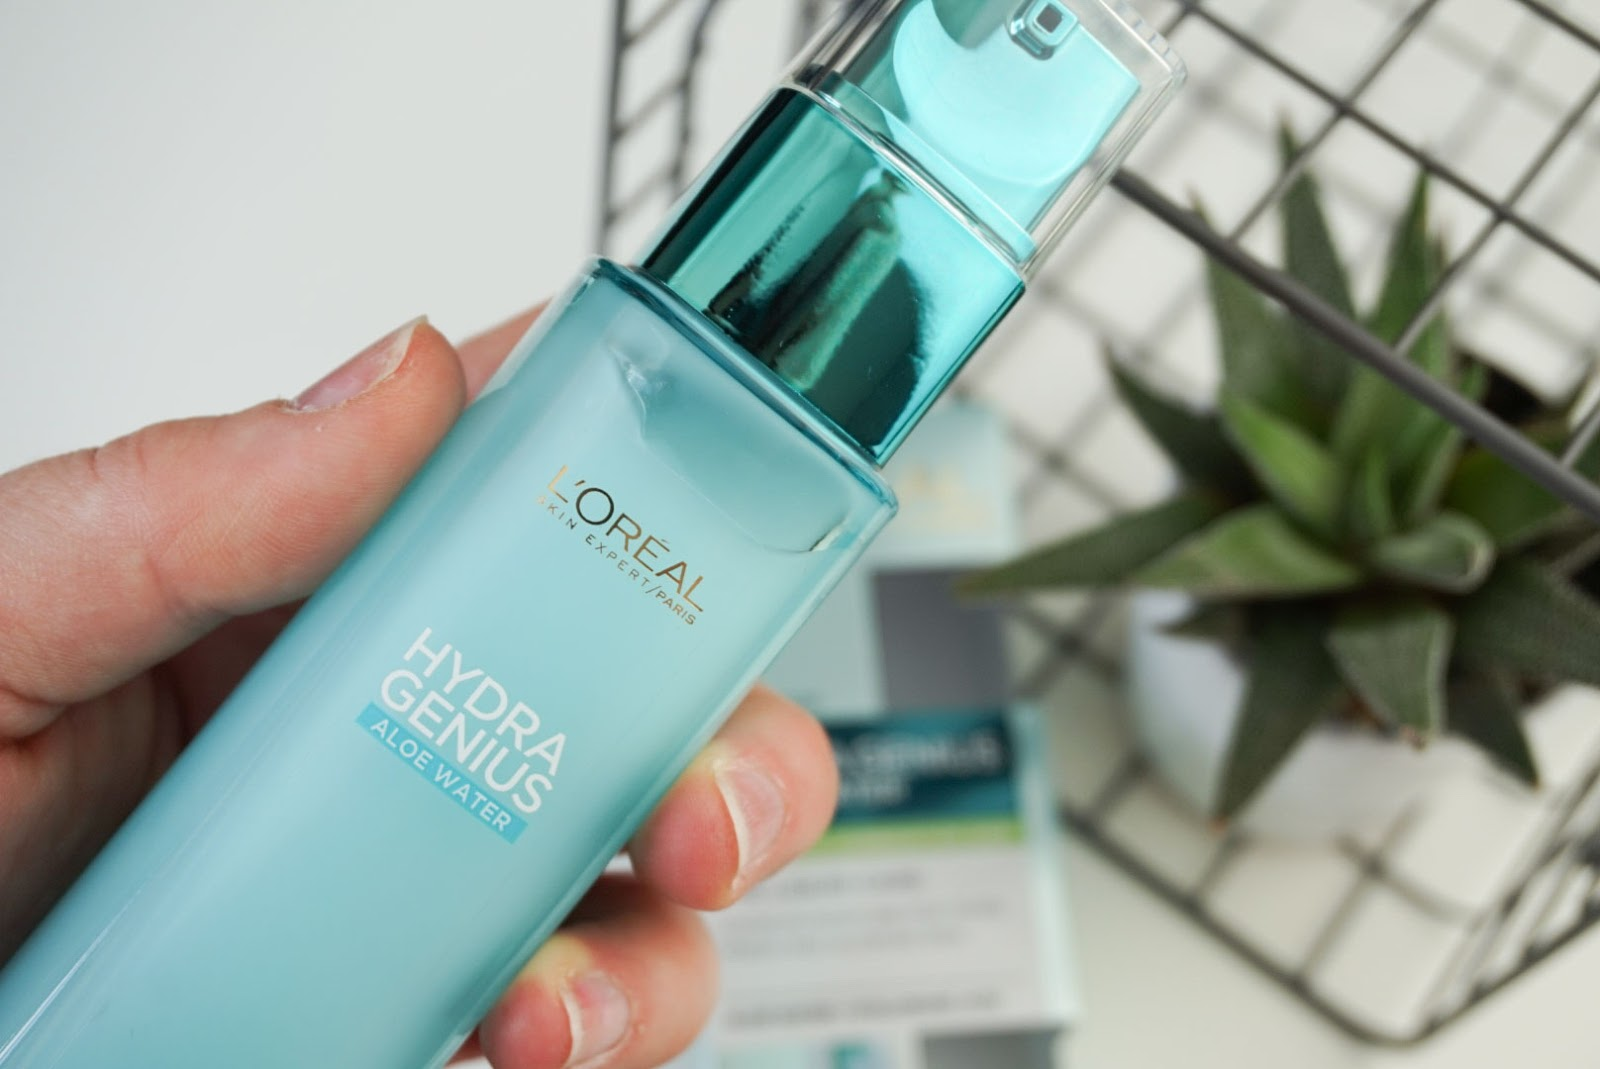 Hydra Genius Aloe Water - The New Product From L'Oreal You Need On Your Dresser